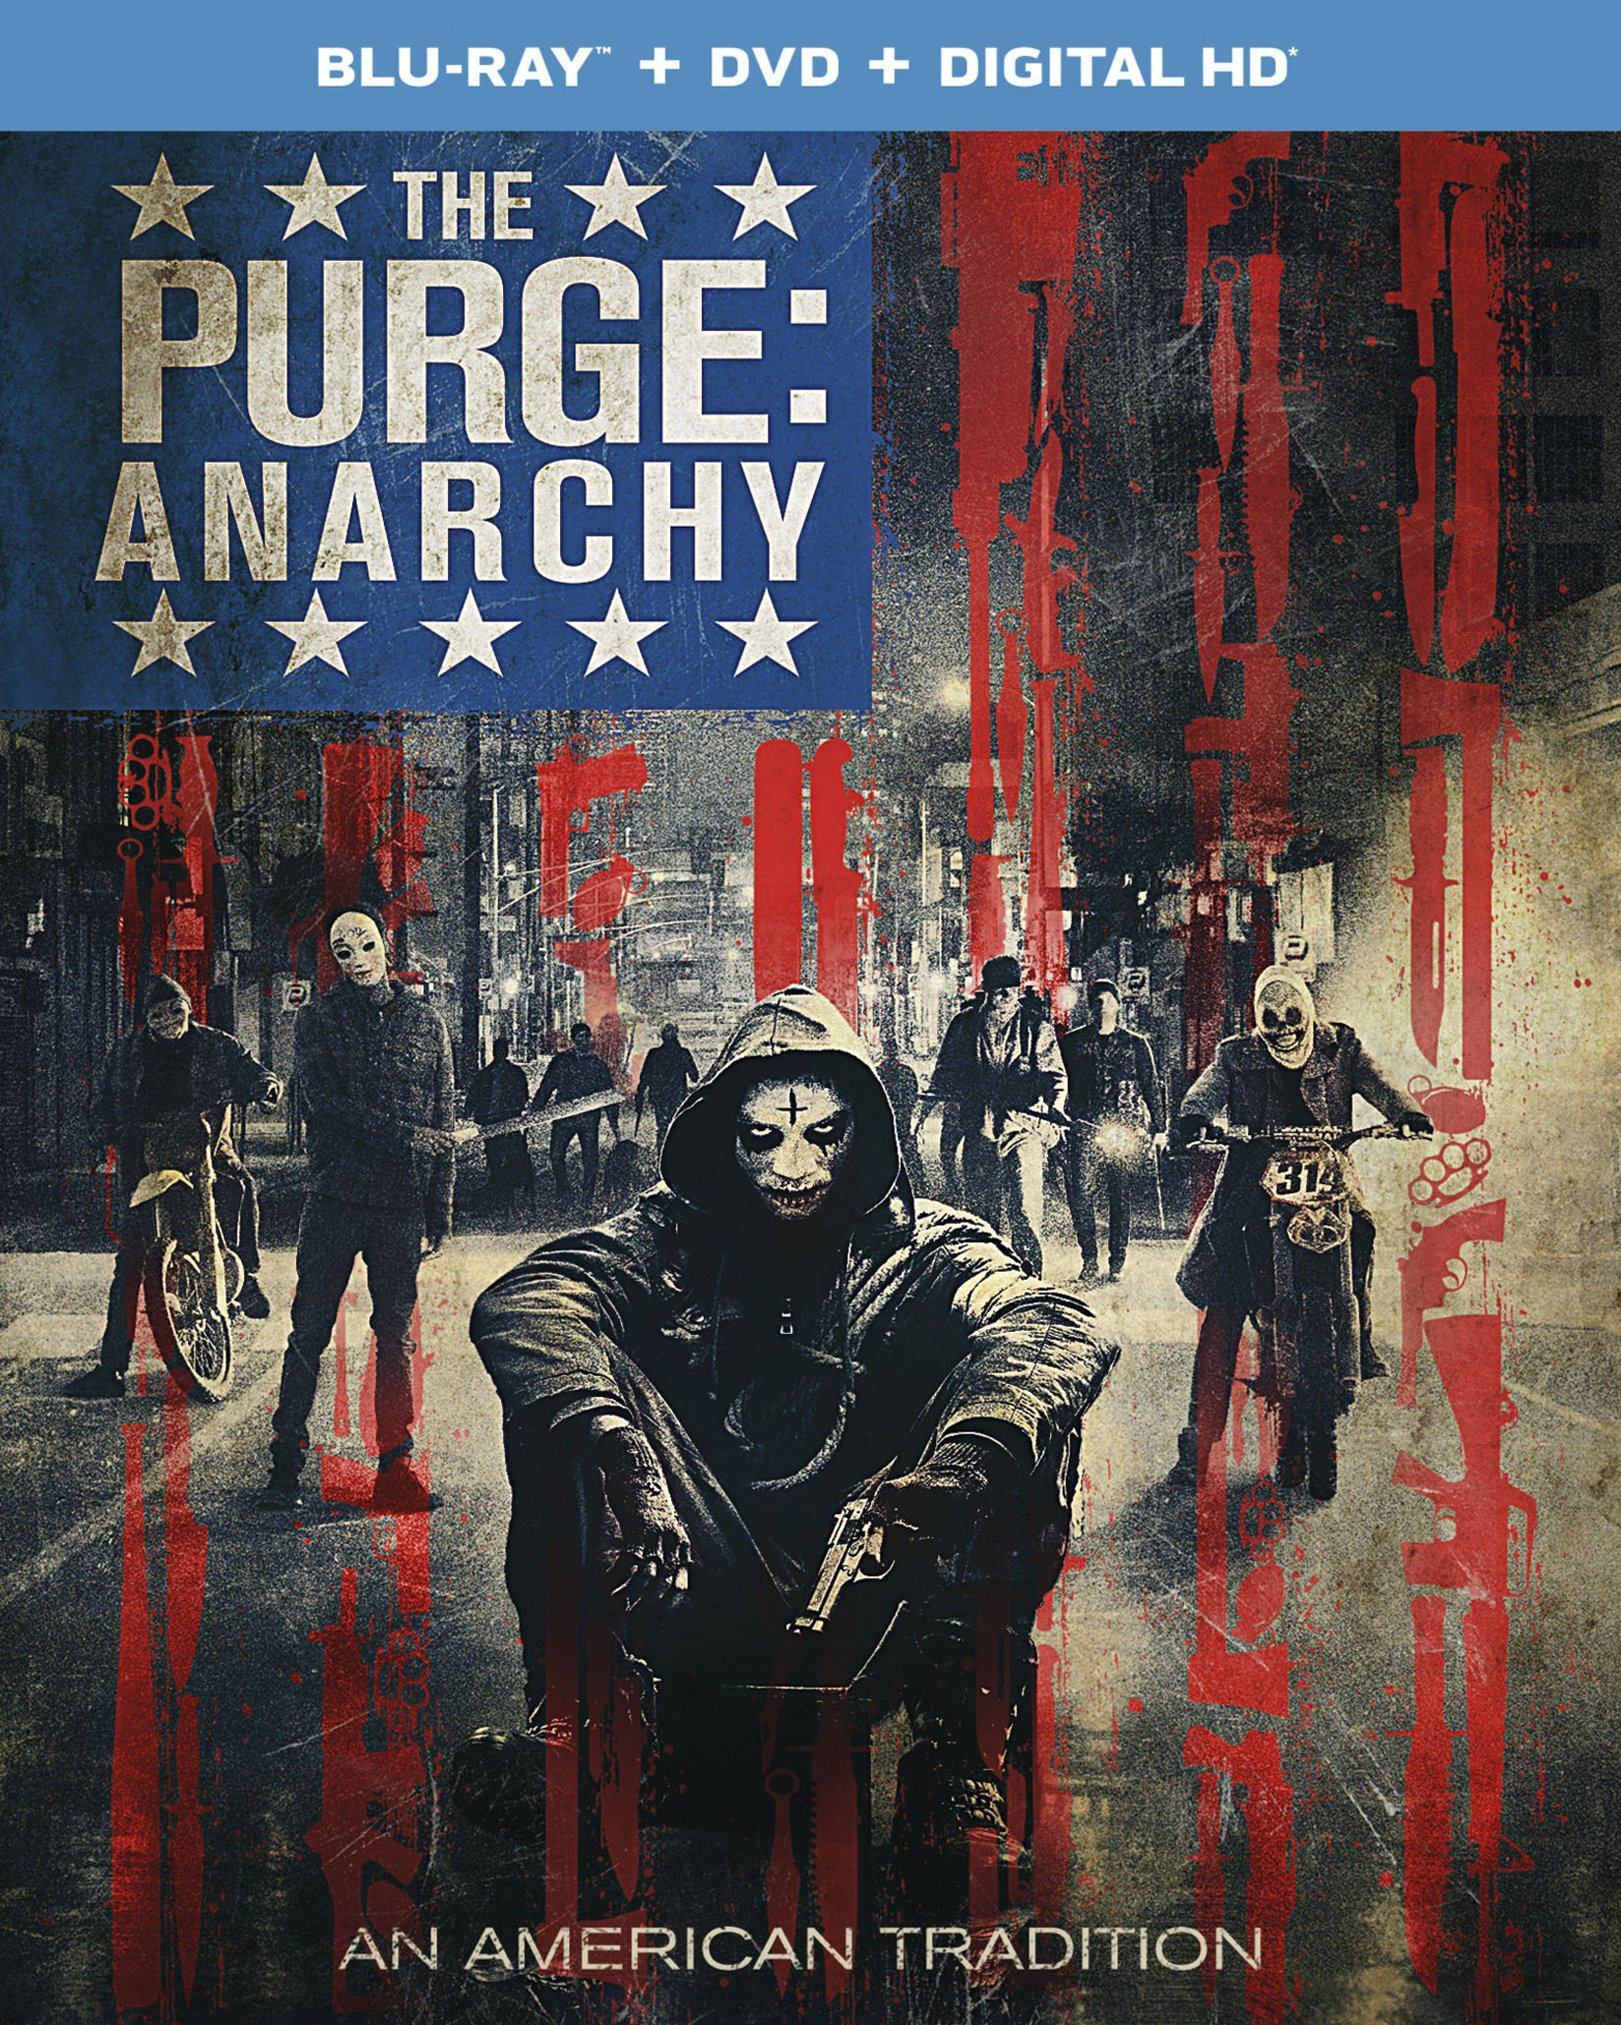 The Purge Anarchy Blu-ray Review